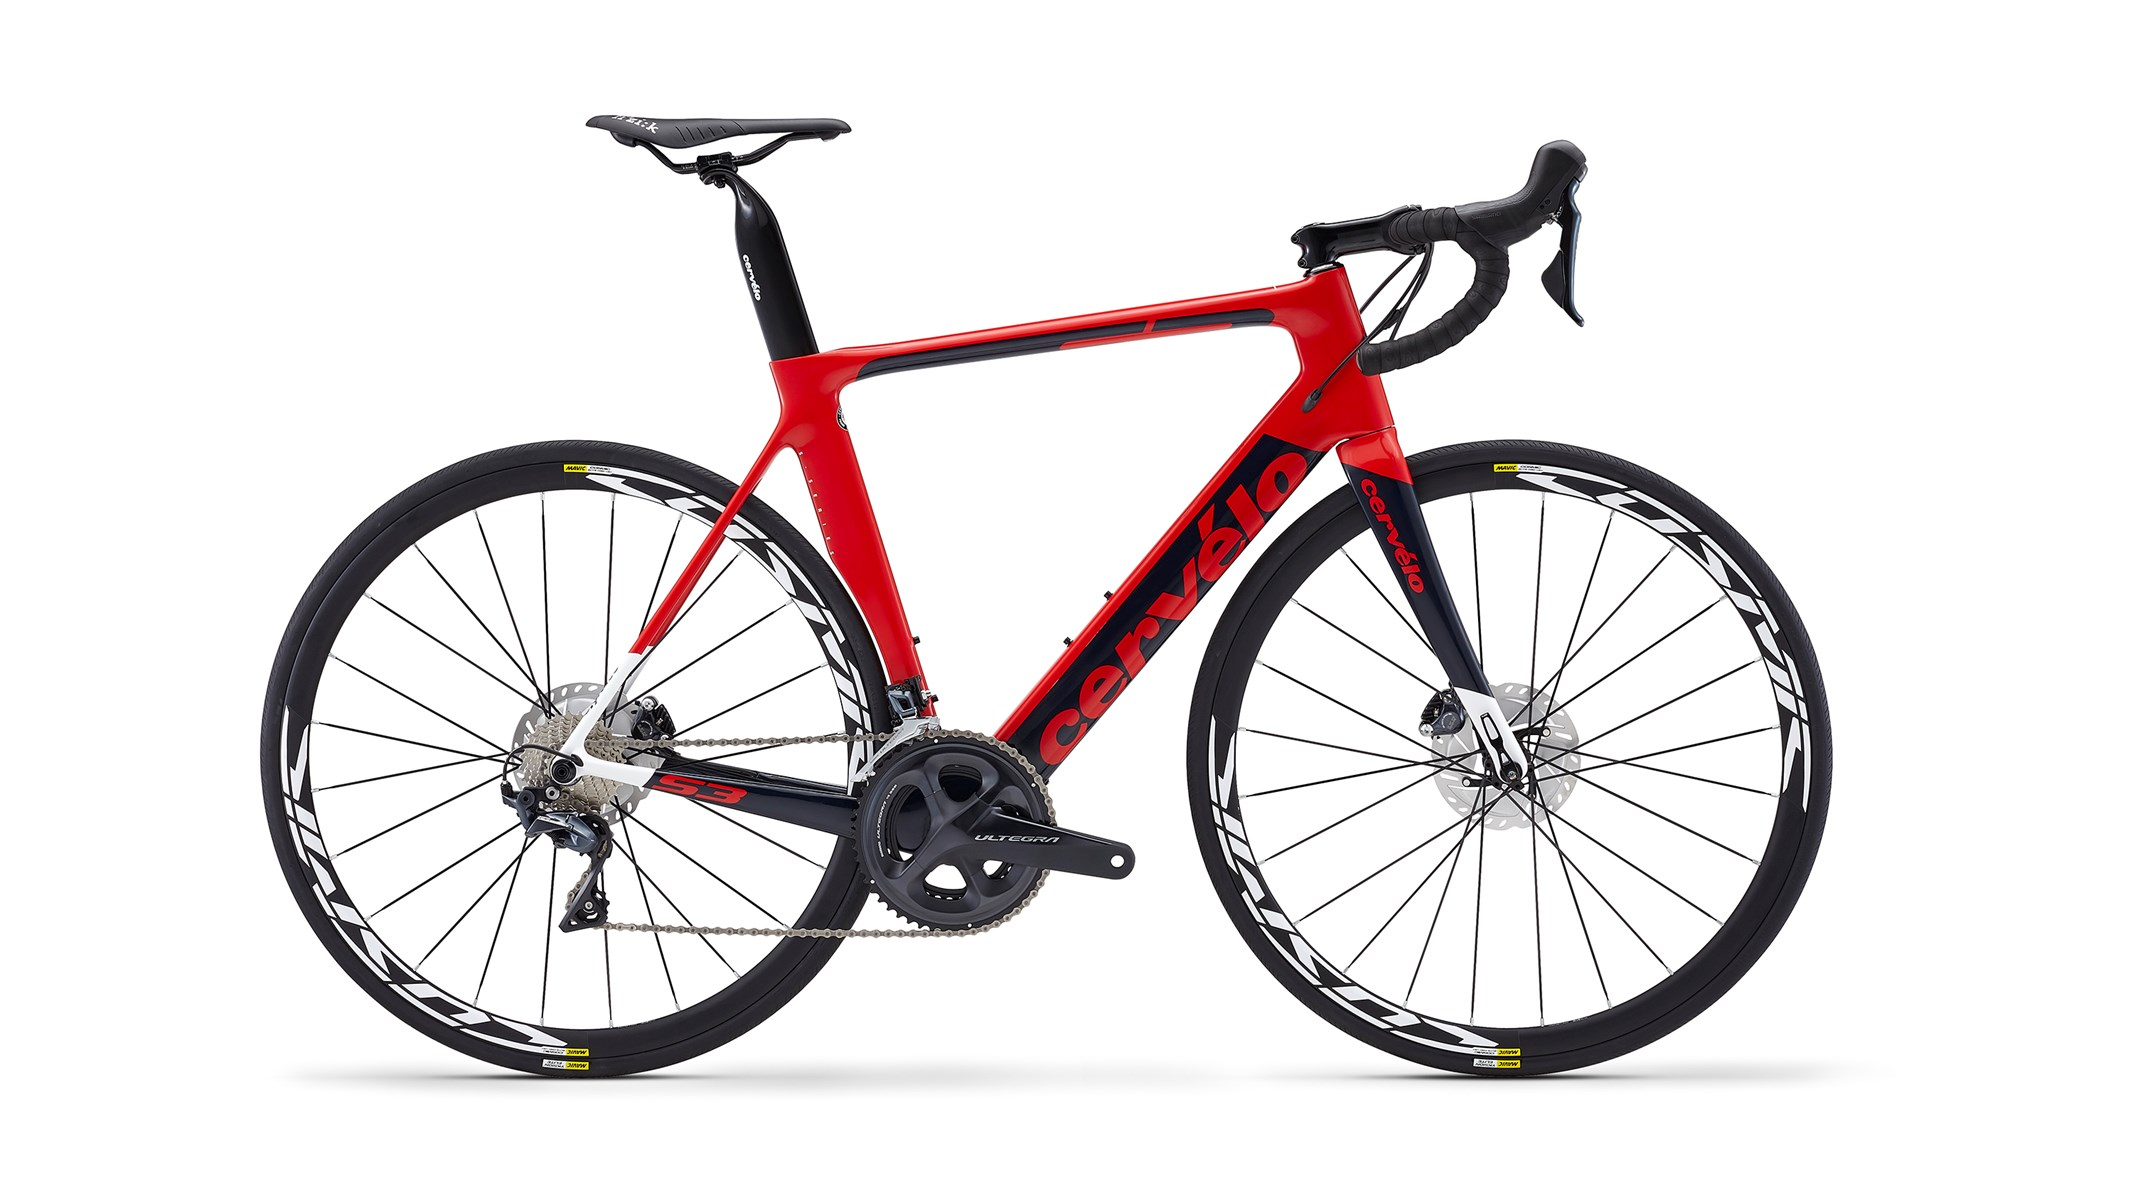 e3cfd59a7f8 Cervelo S3 Ultegra 8020 Hydraulic Disc 2018 Red Blue Road Bike. 0 (Be the  first to add a review!)